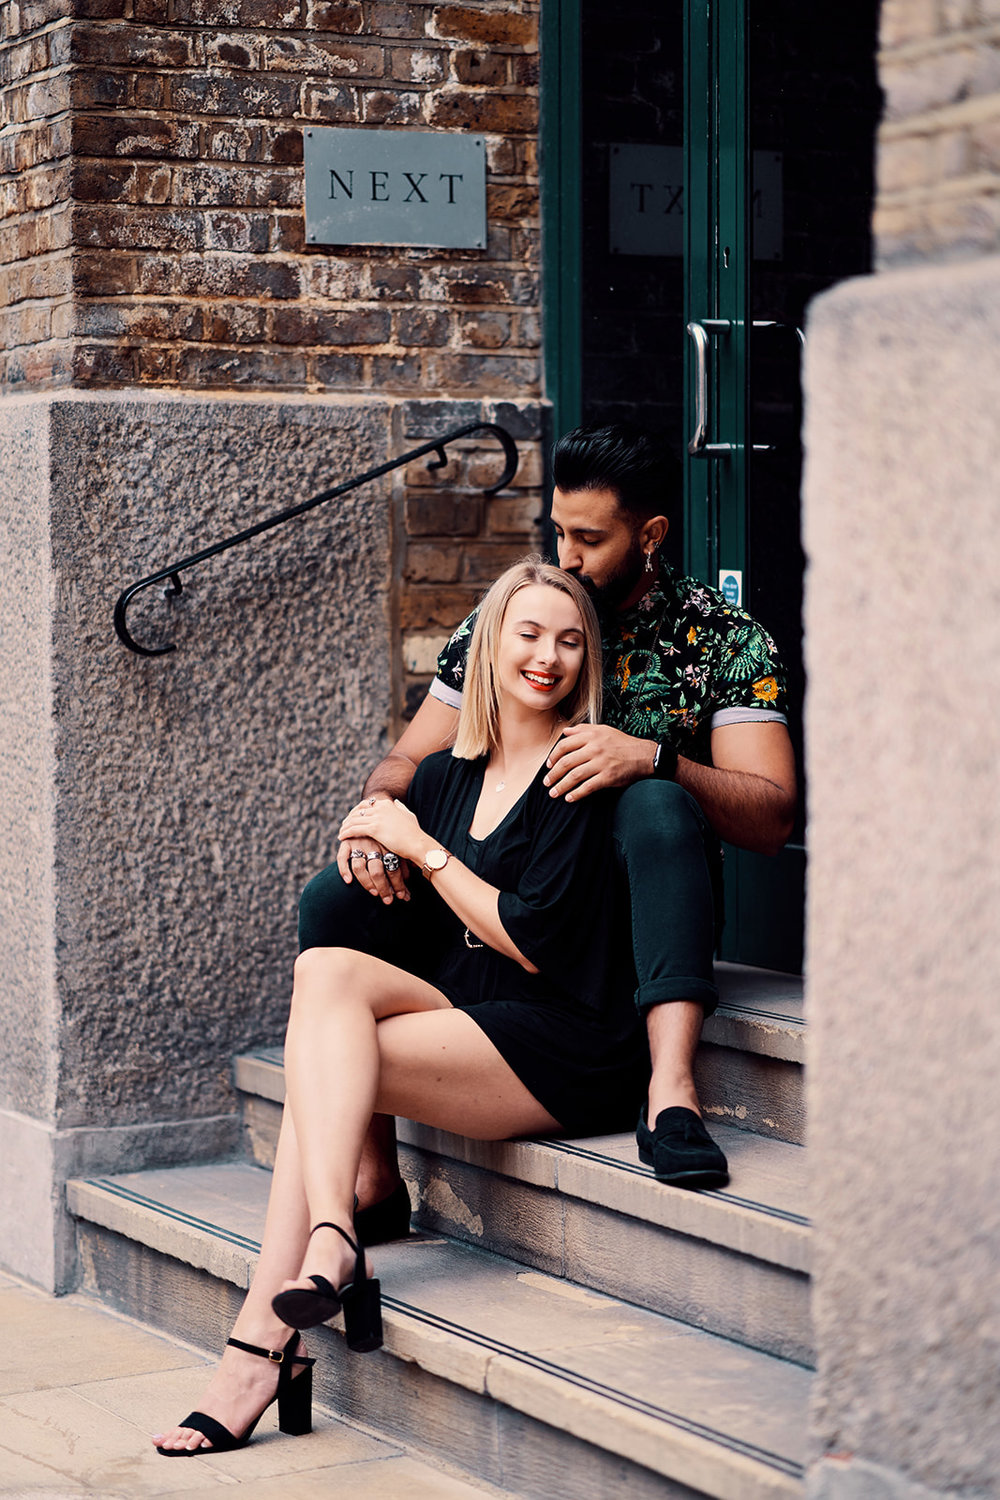 engagement-photo-shoot-near-hays-galleria-in-london-by-afewgoodclicks